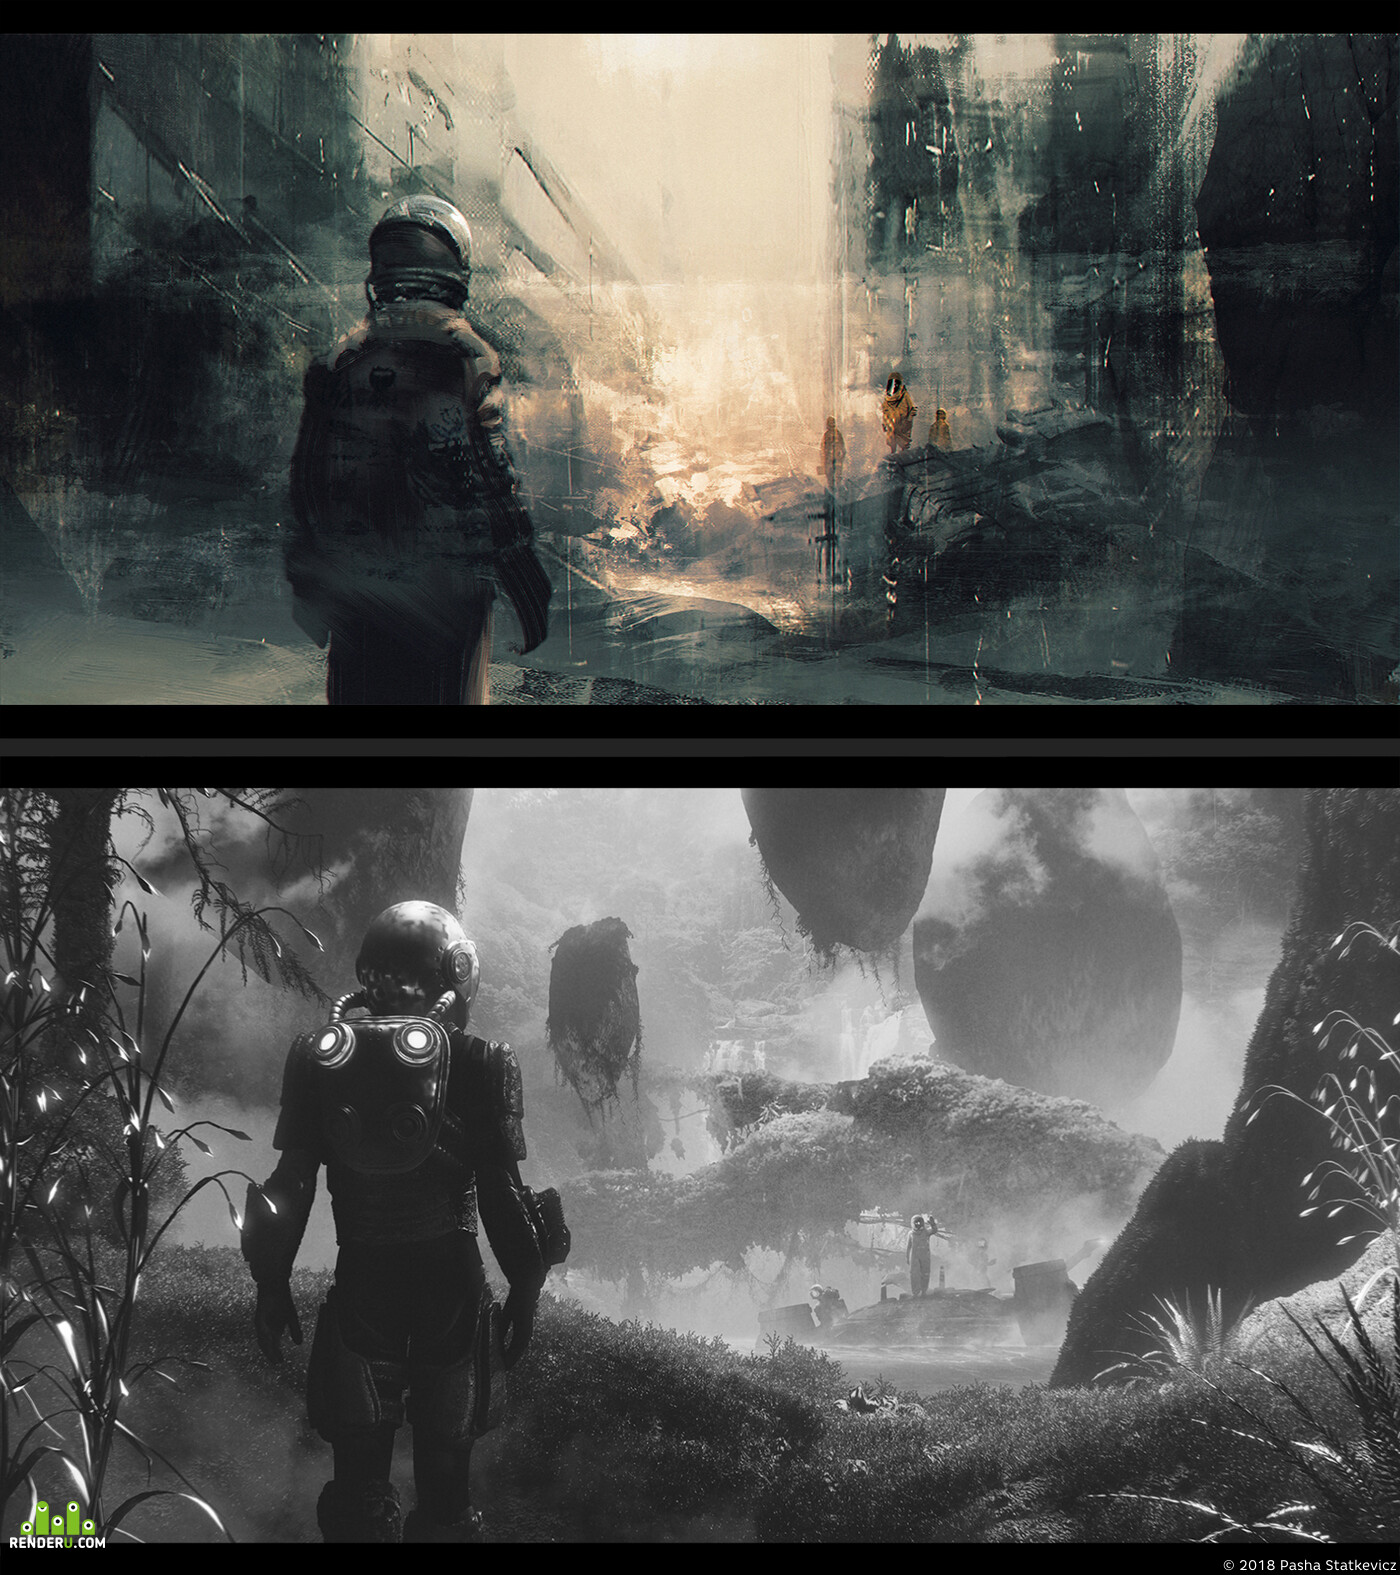 concept, Concept Art, illustration, scifi, sci-fi, Matte painting